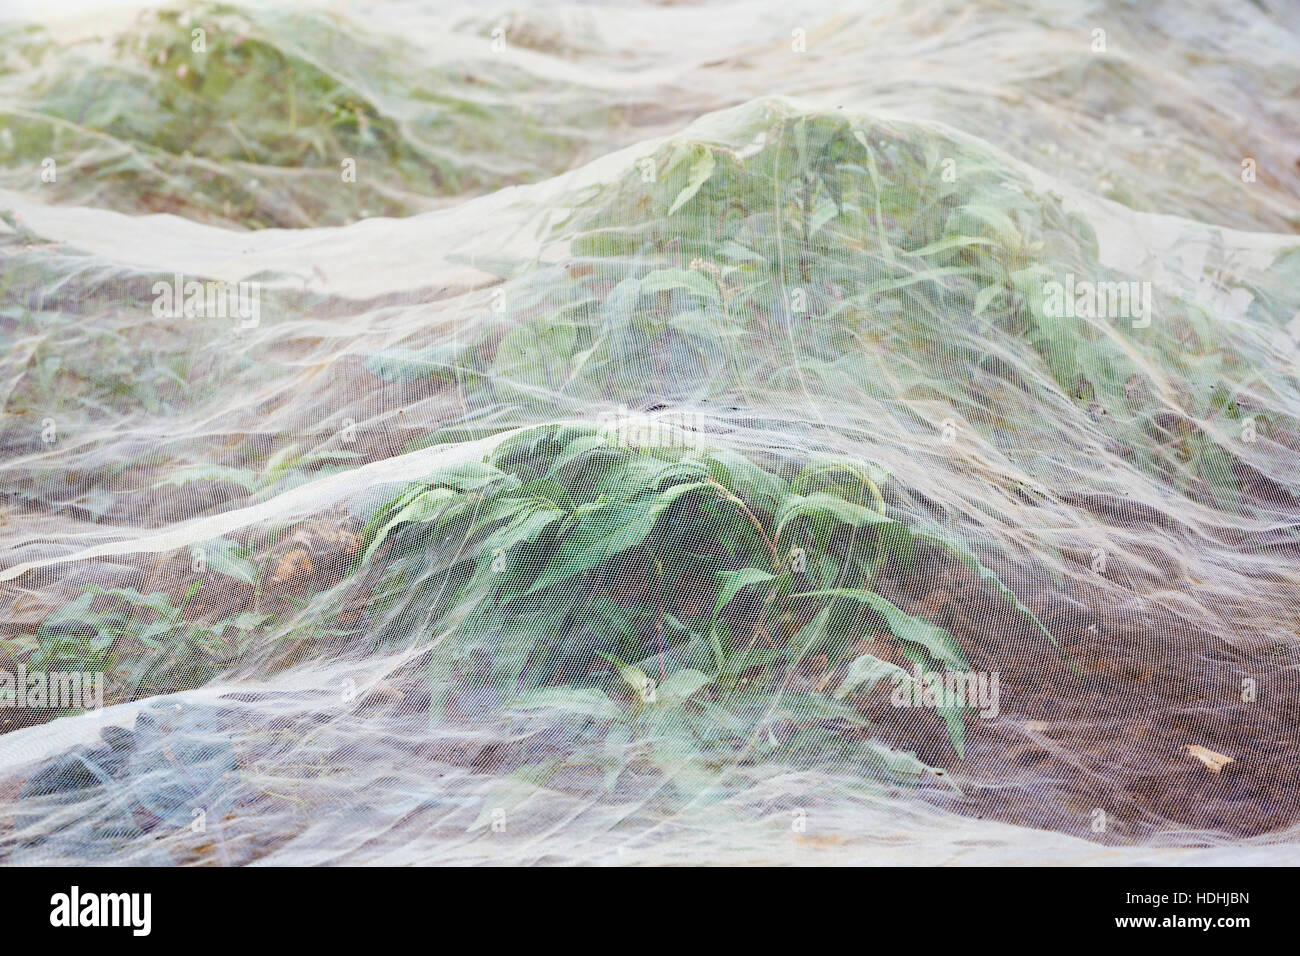 Horticultural fleece covering a growing crop. Stock Photo